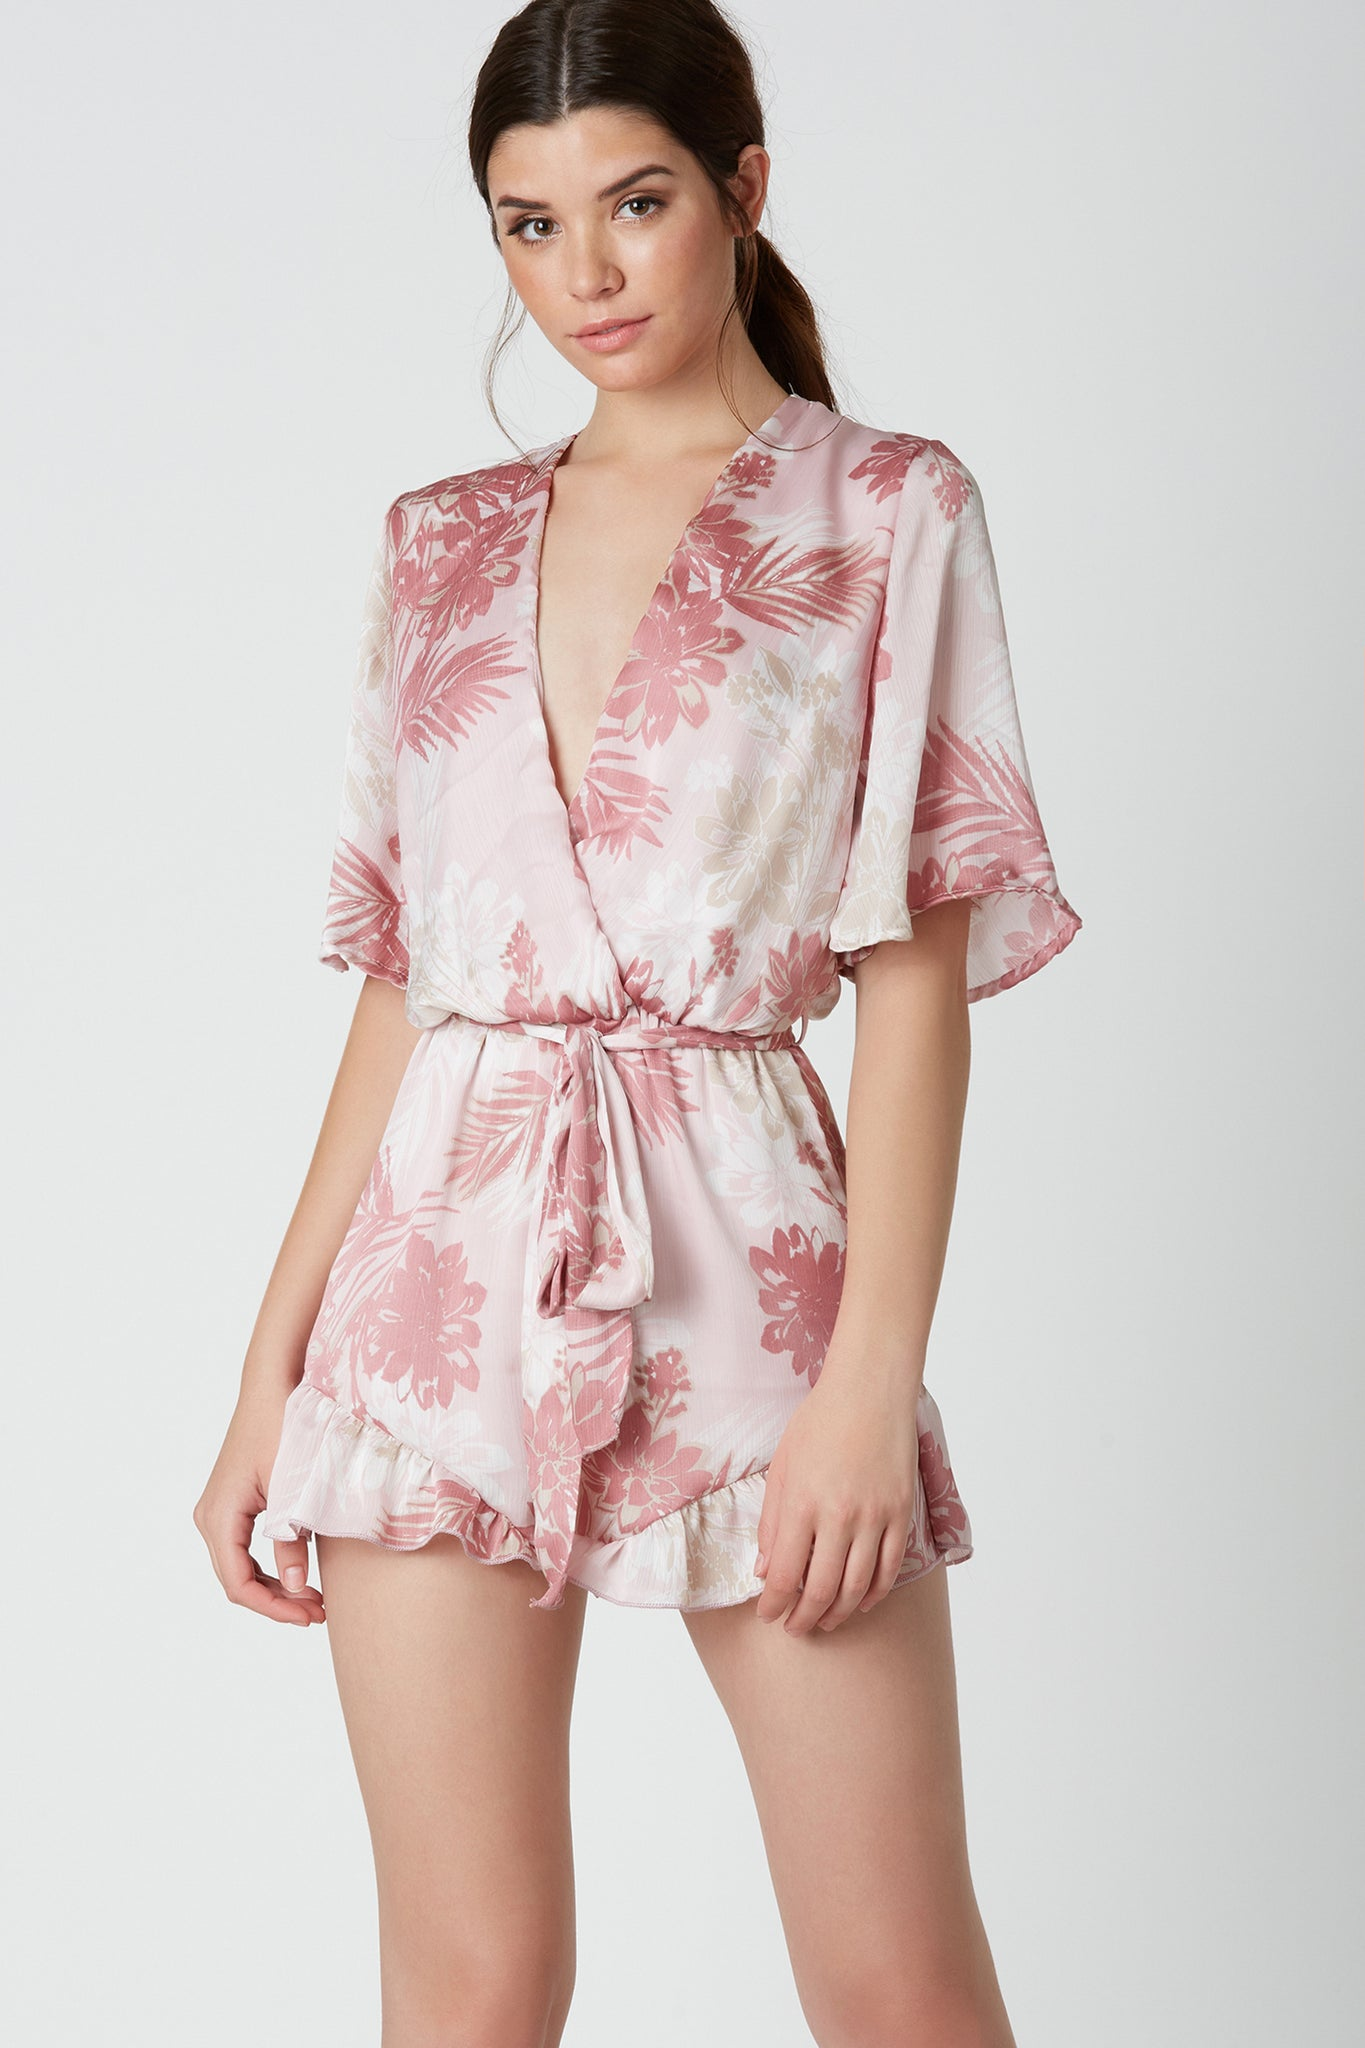 Lightweight short sleeve romper with overlap neckline and waist tie detailing. Floral print throughout with ruffle trim at hem and smooth satin-like finish.